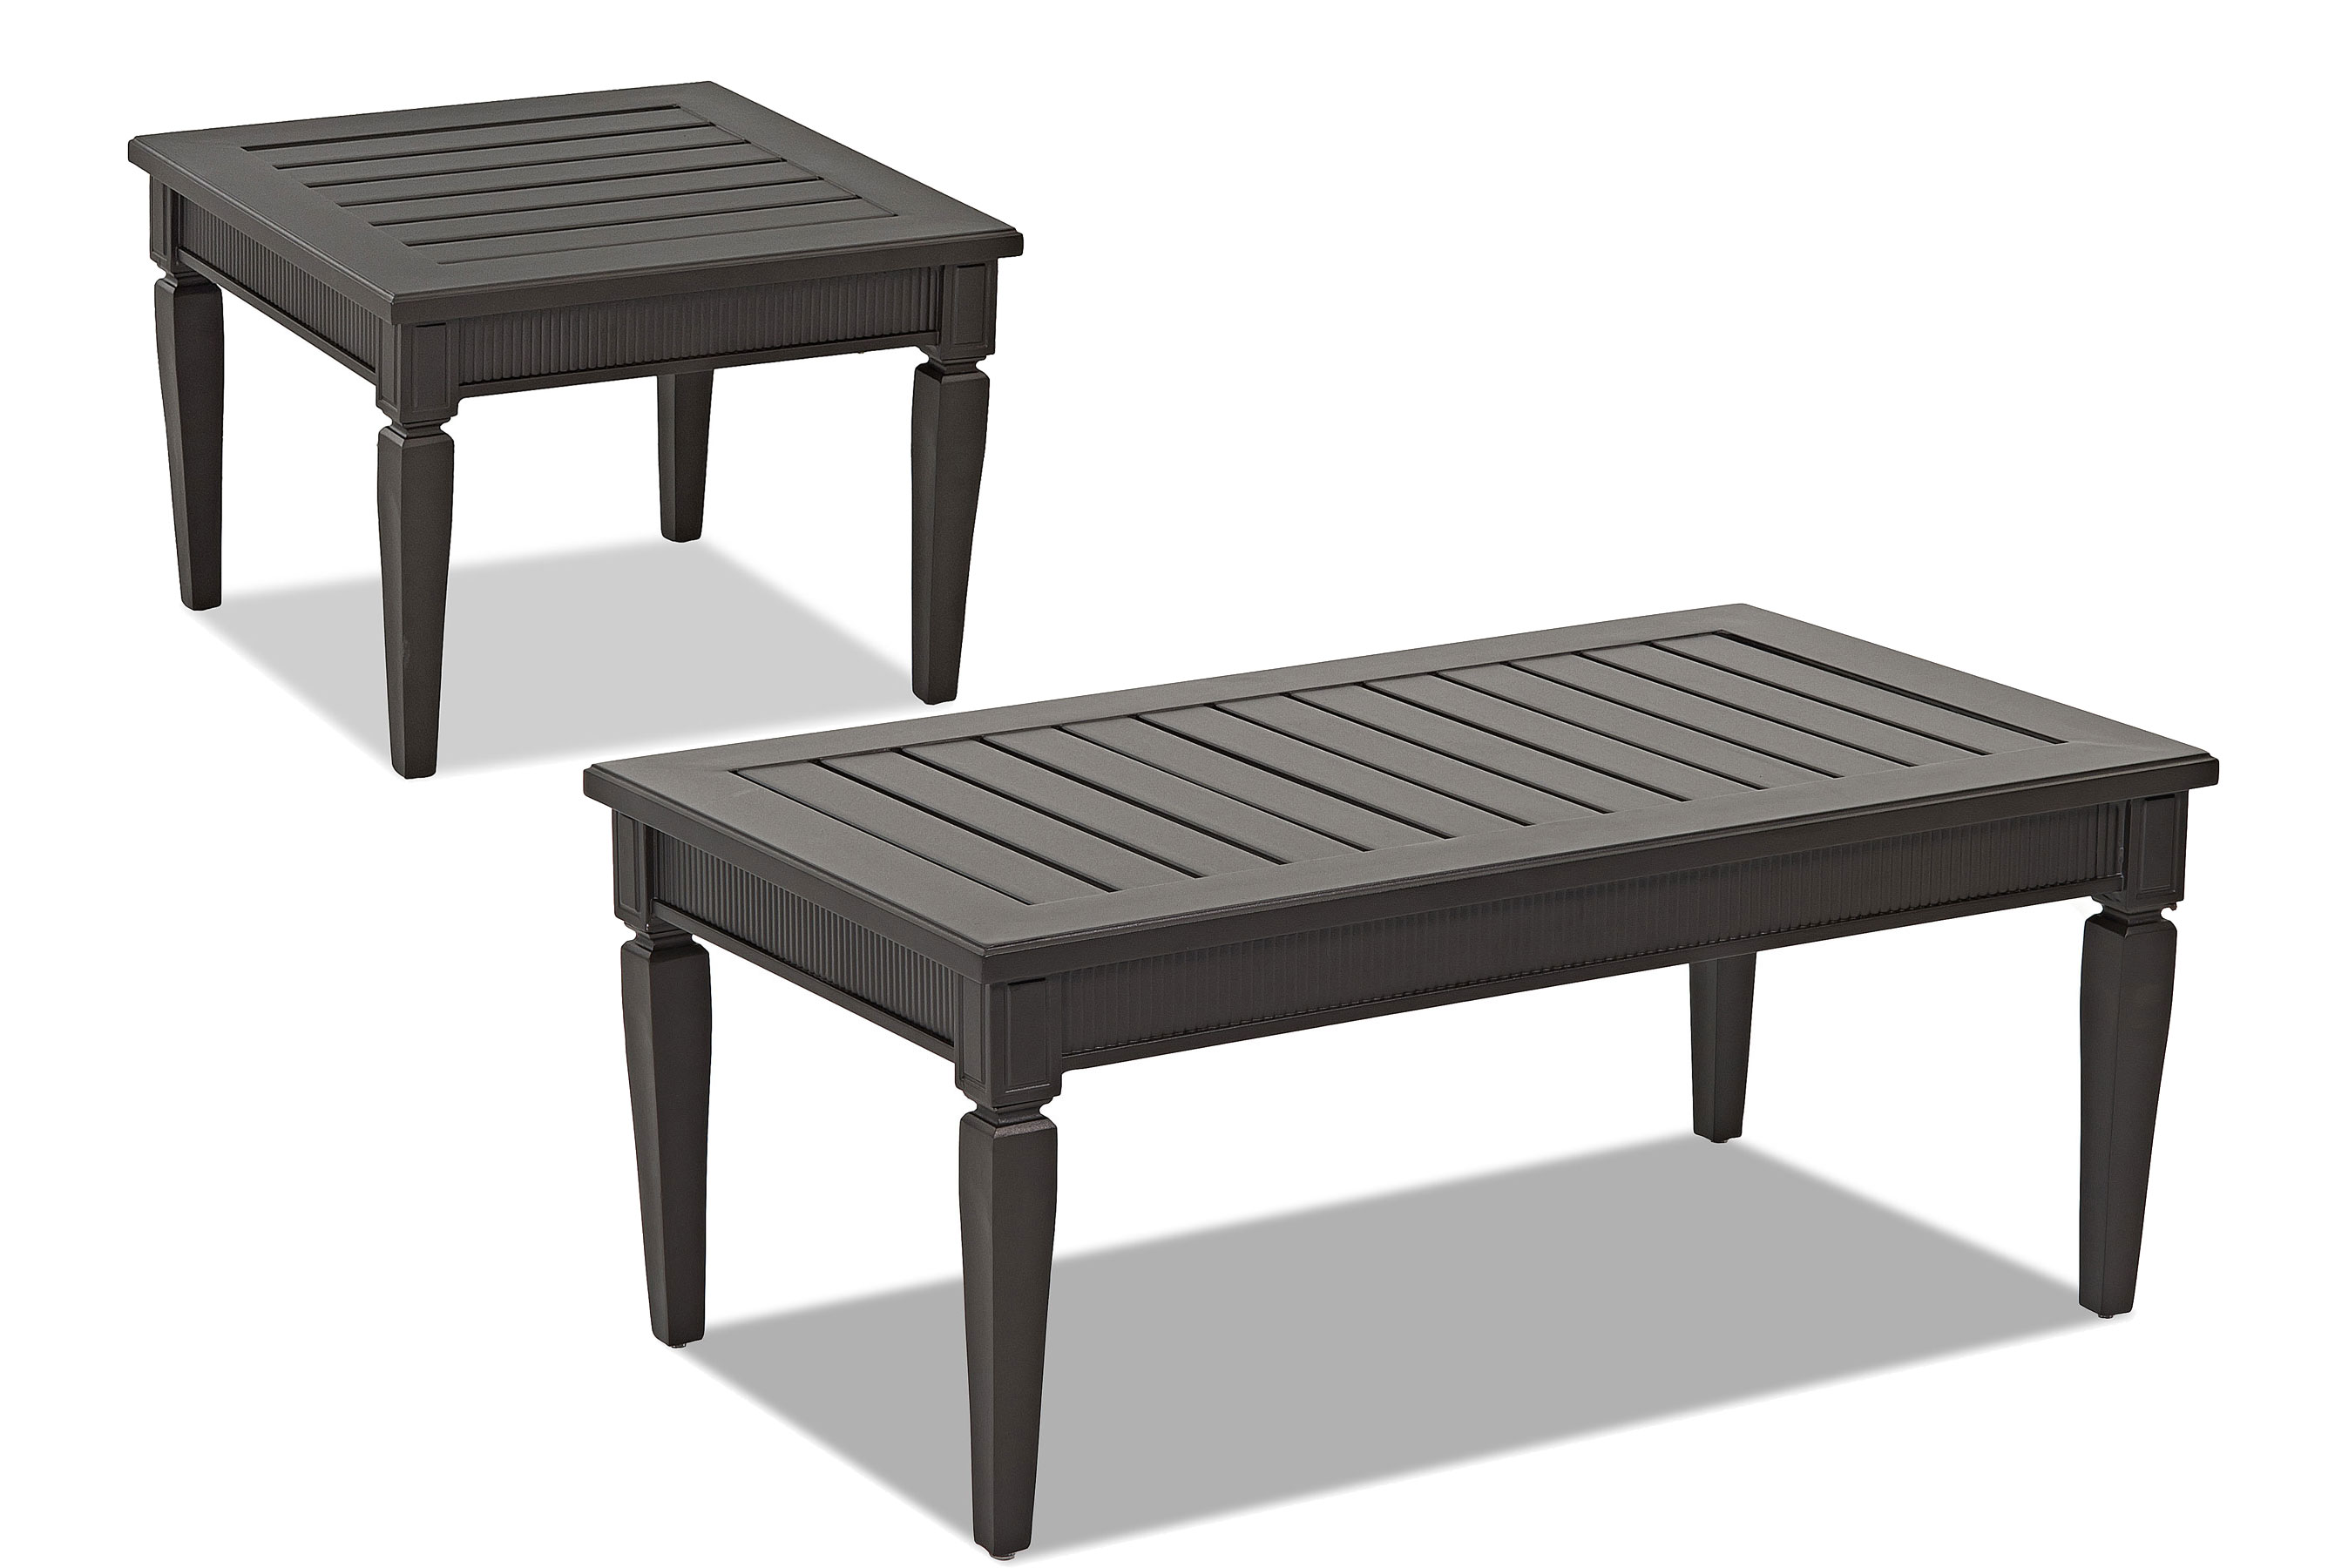 Cerissa W4200 Outdoor Living Room Tables | Sofas and Sectionals